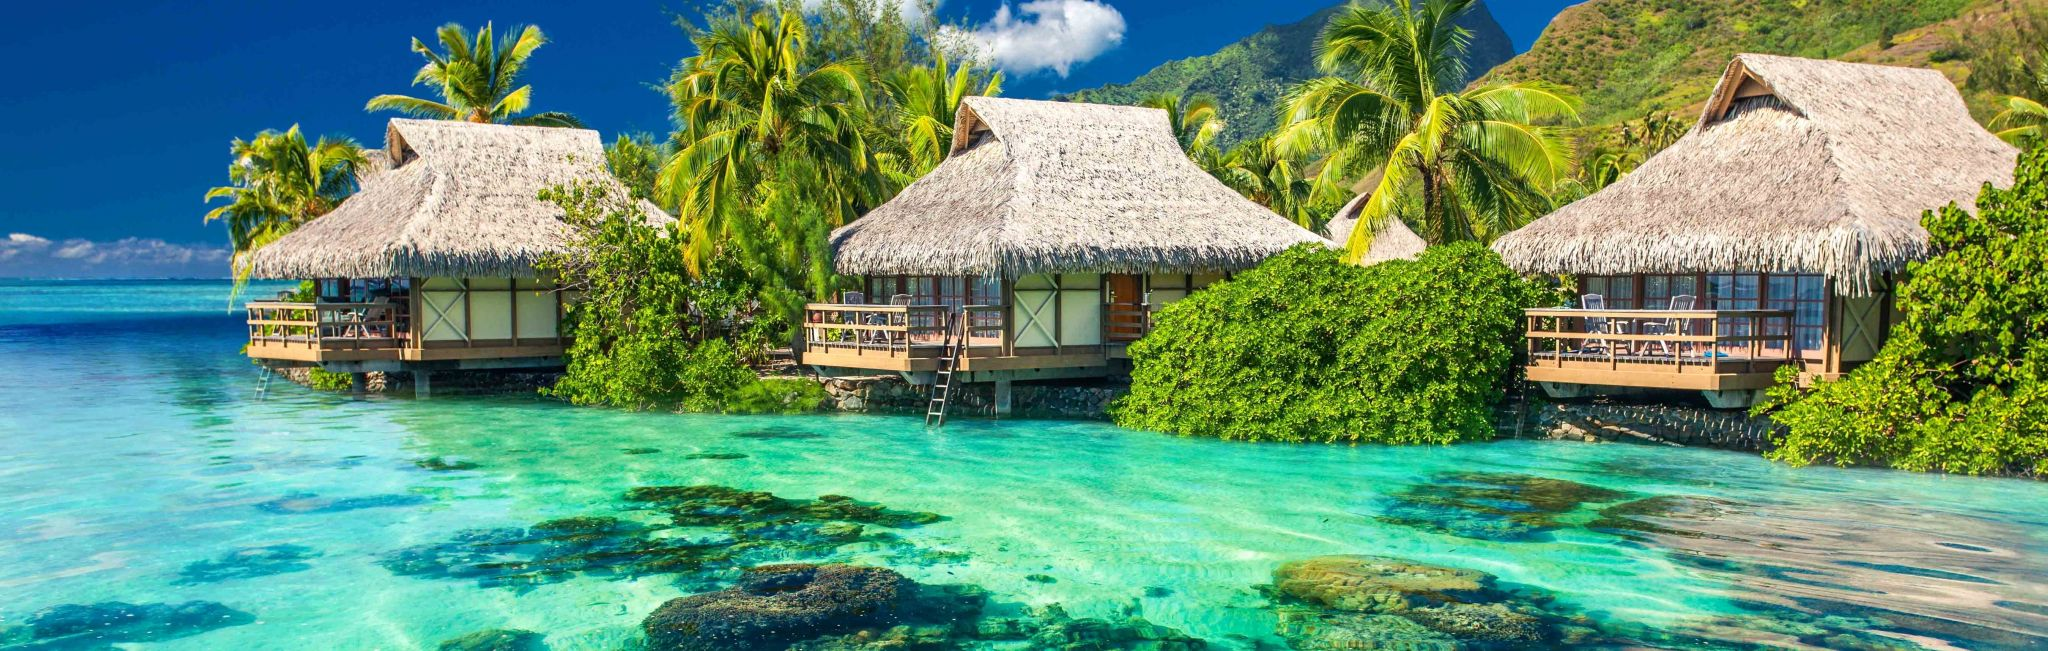 Fiji Vacations 2017 2018 Best Fiji Vacation Packages